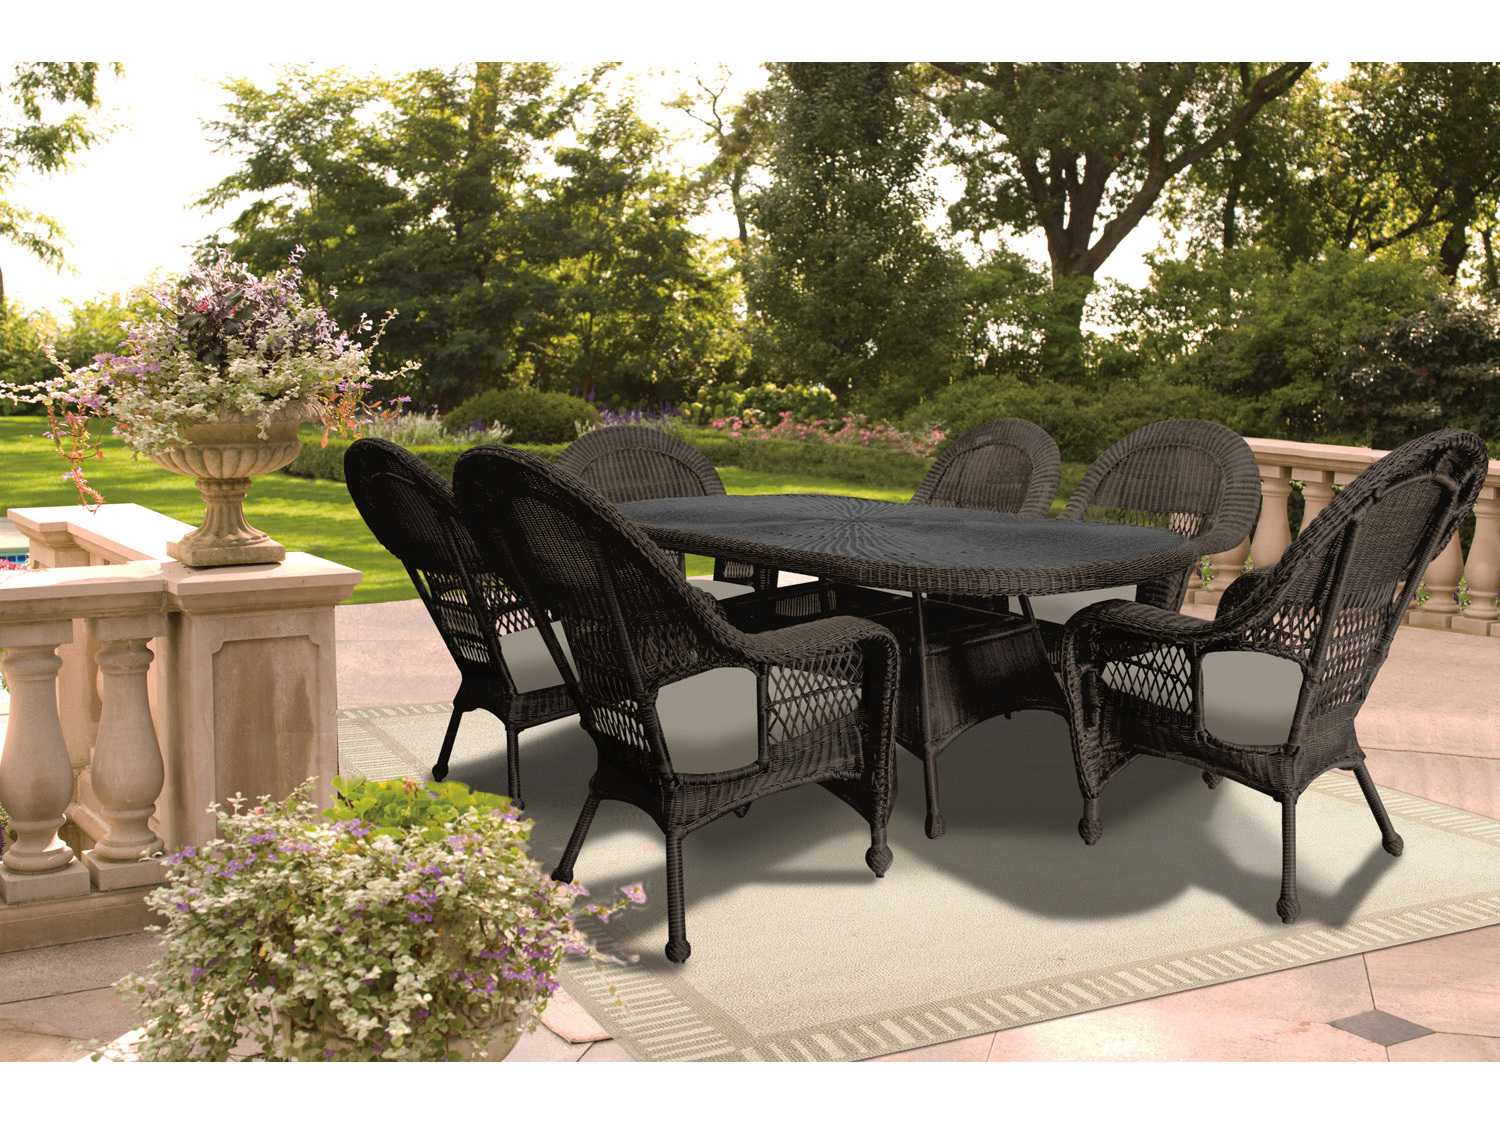 7 Piece Round Patio Dining Set Forever Patio Catalina Wicker 7 Piece Round Dining Set In